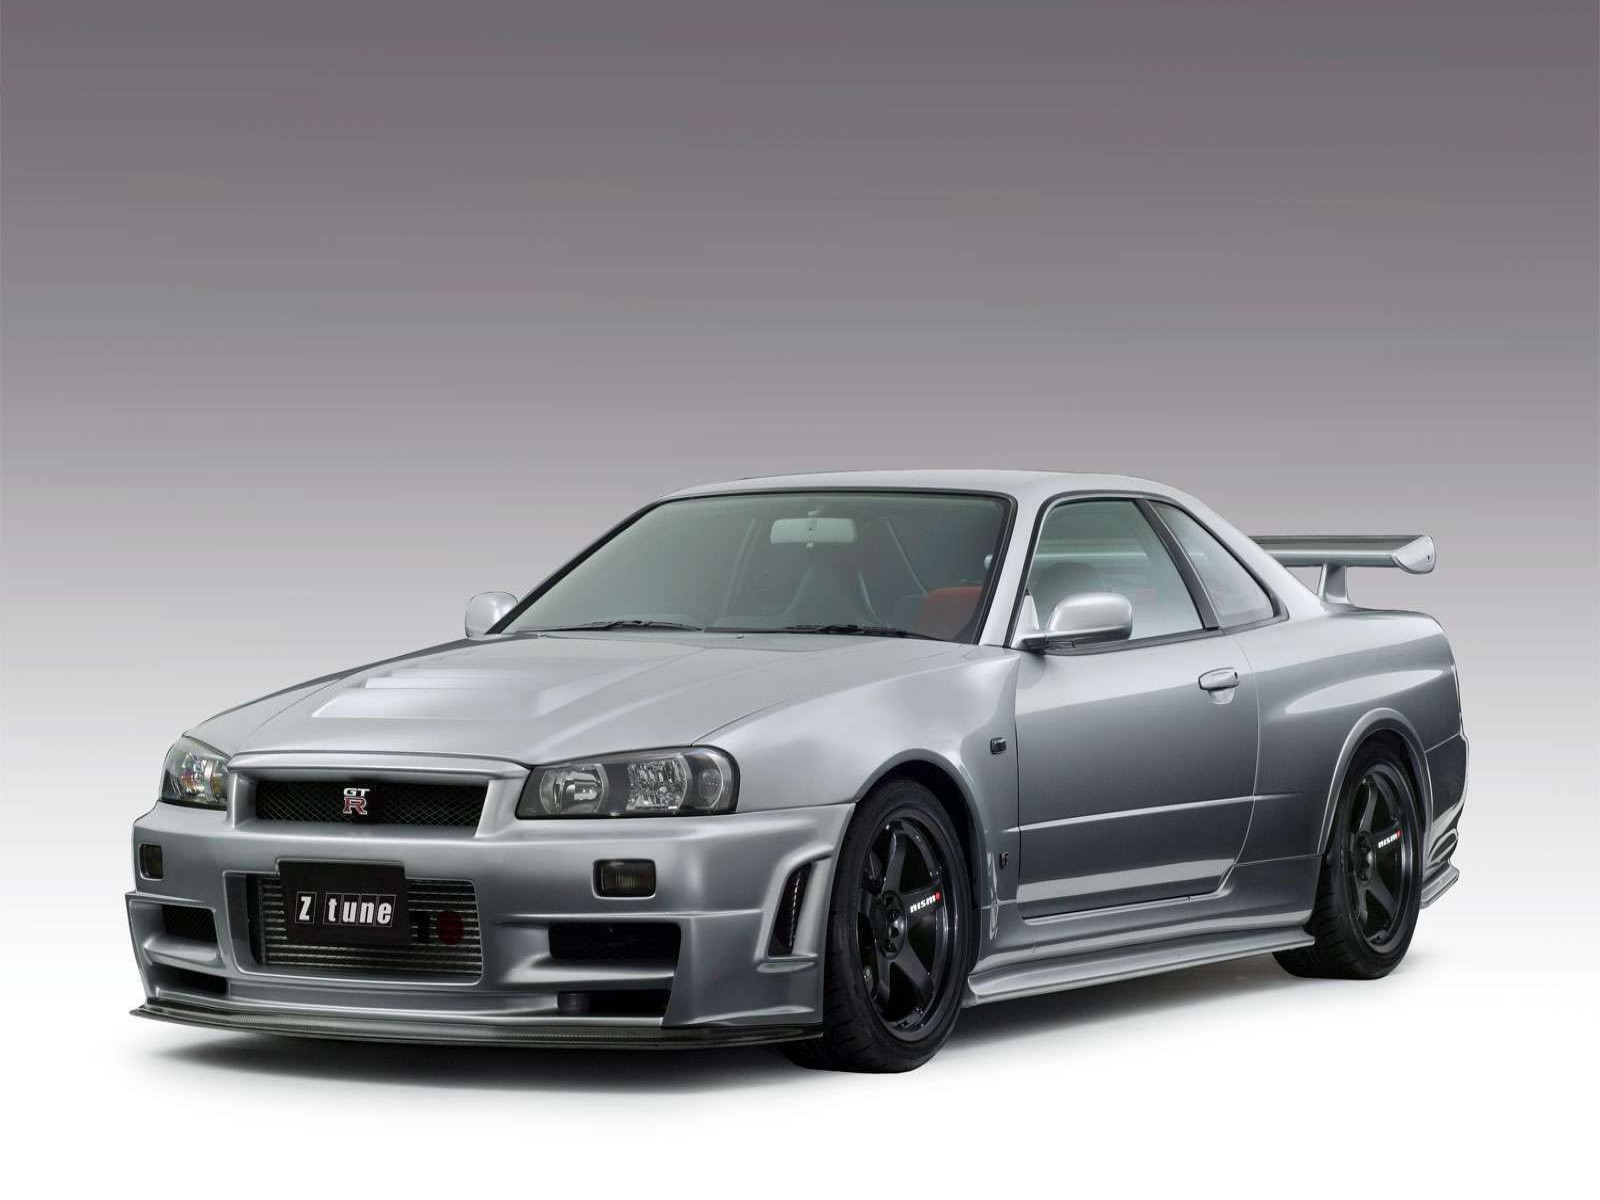 Car Pictures Nismo Nissan Skyline R34 Gtr Z Tune 2005